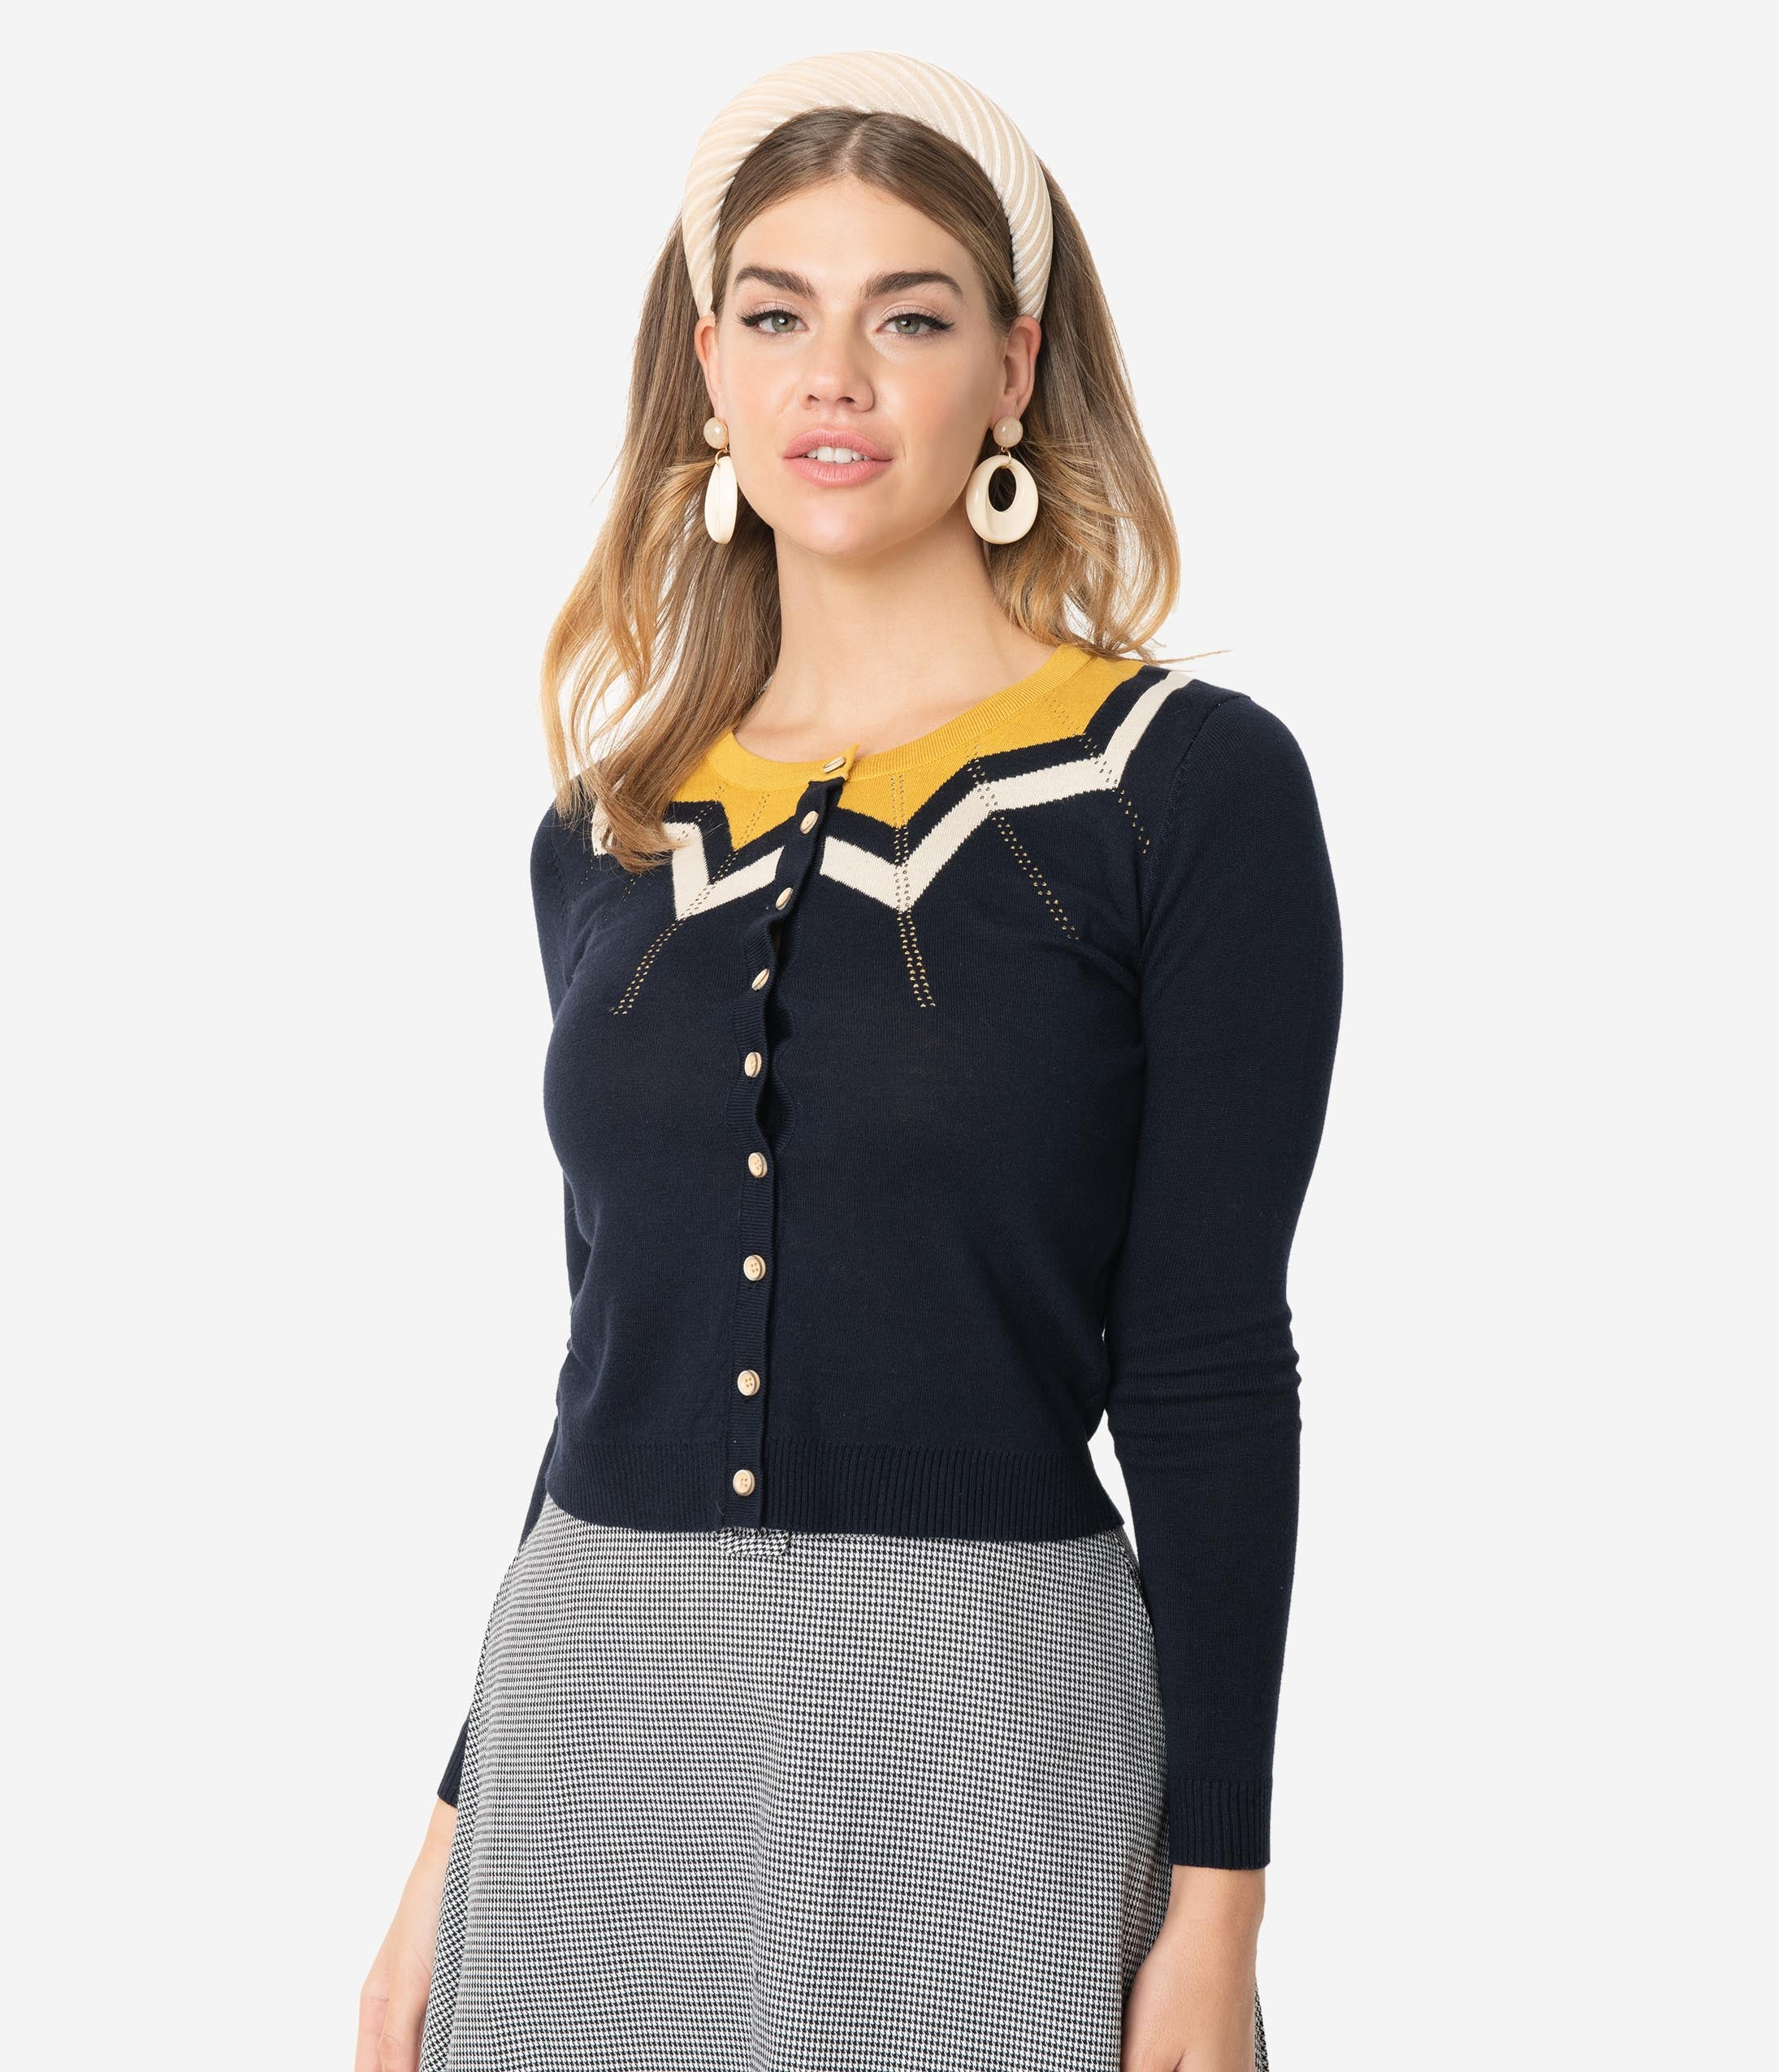 Authentic Natural 1950s Makeup History and Tutorial Navy Blue  Mustard Chevron Button Up Long Sleeve Knit Cardigan $52.00 AT vintagedancer.com